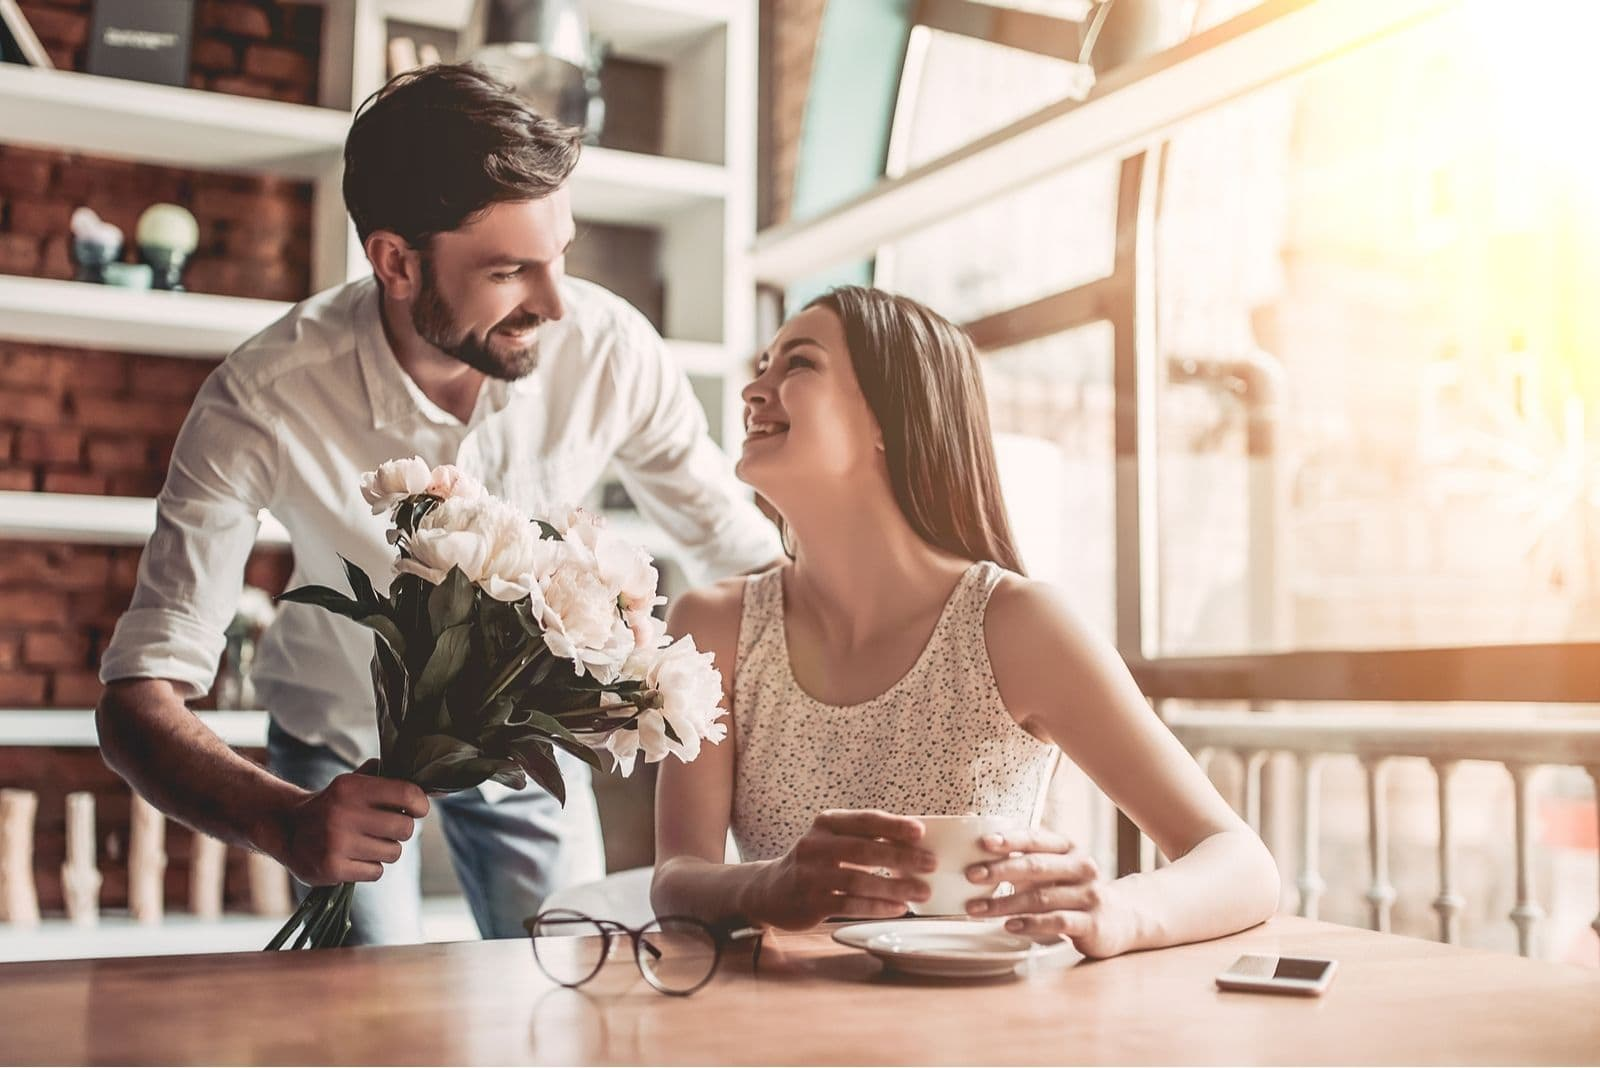 man giving flower to a beautiful woman sitting inside the cafe lloking surprised